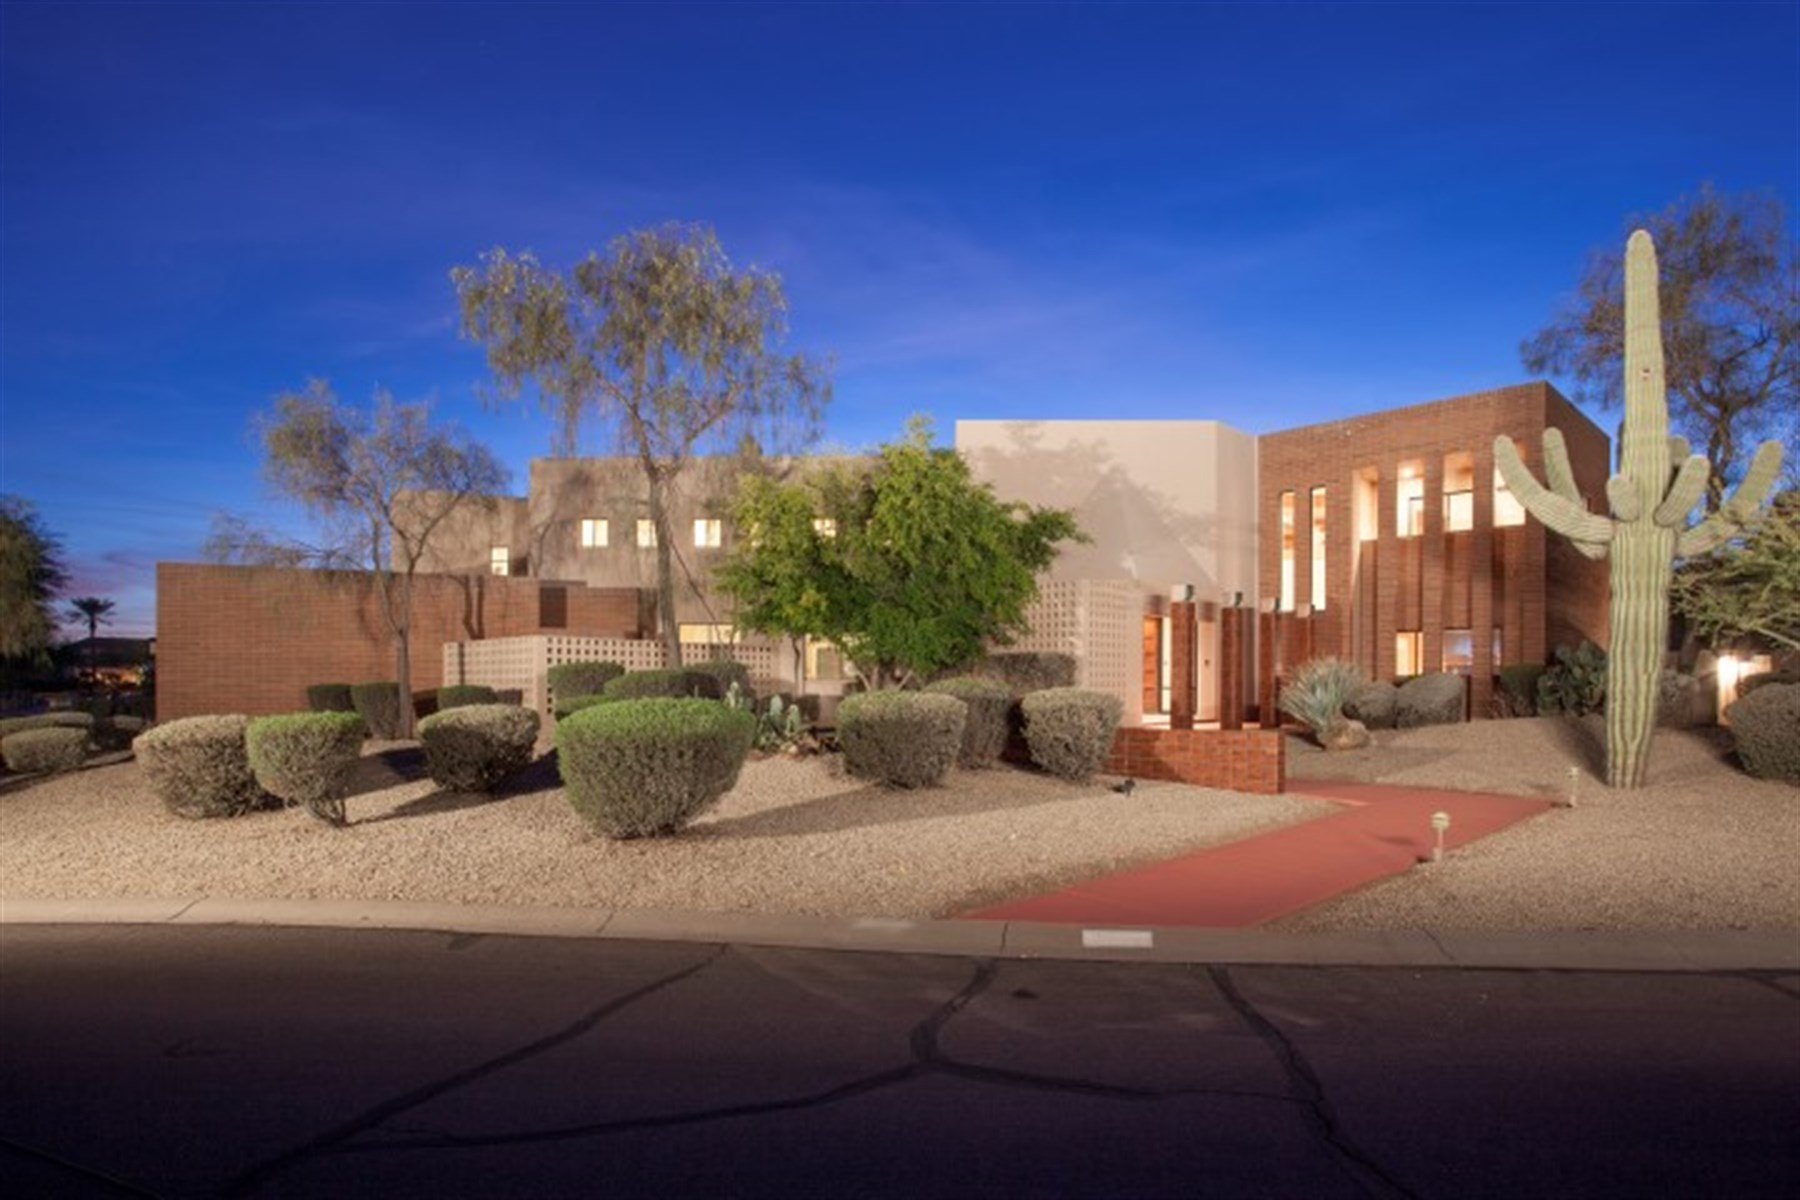 Single Family Home for Sale at One of its kind and designed by award winning architect Fred Linn Osmon. 3305 E CHEROKEE ST Phoenix, Arizona 85044 United States